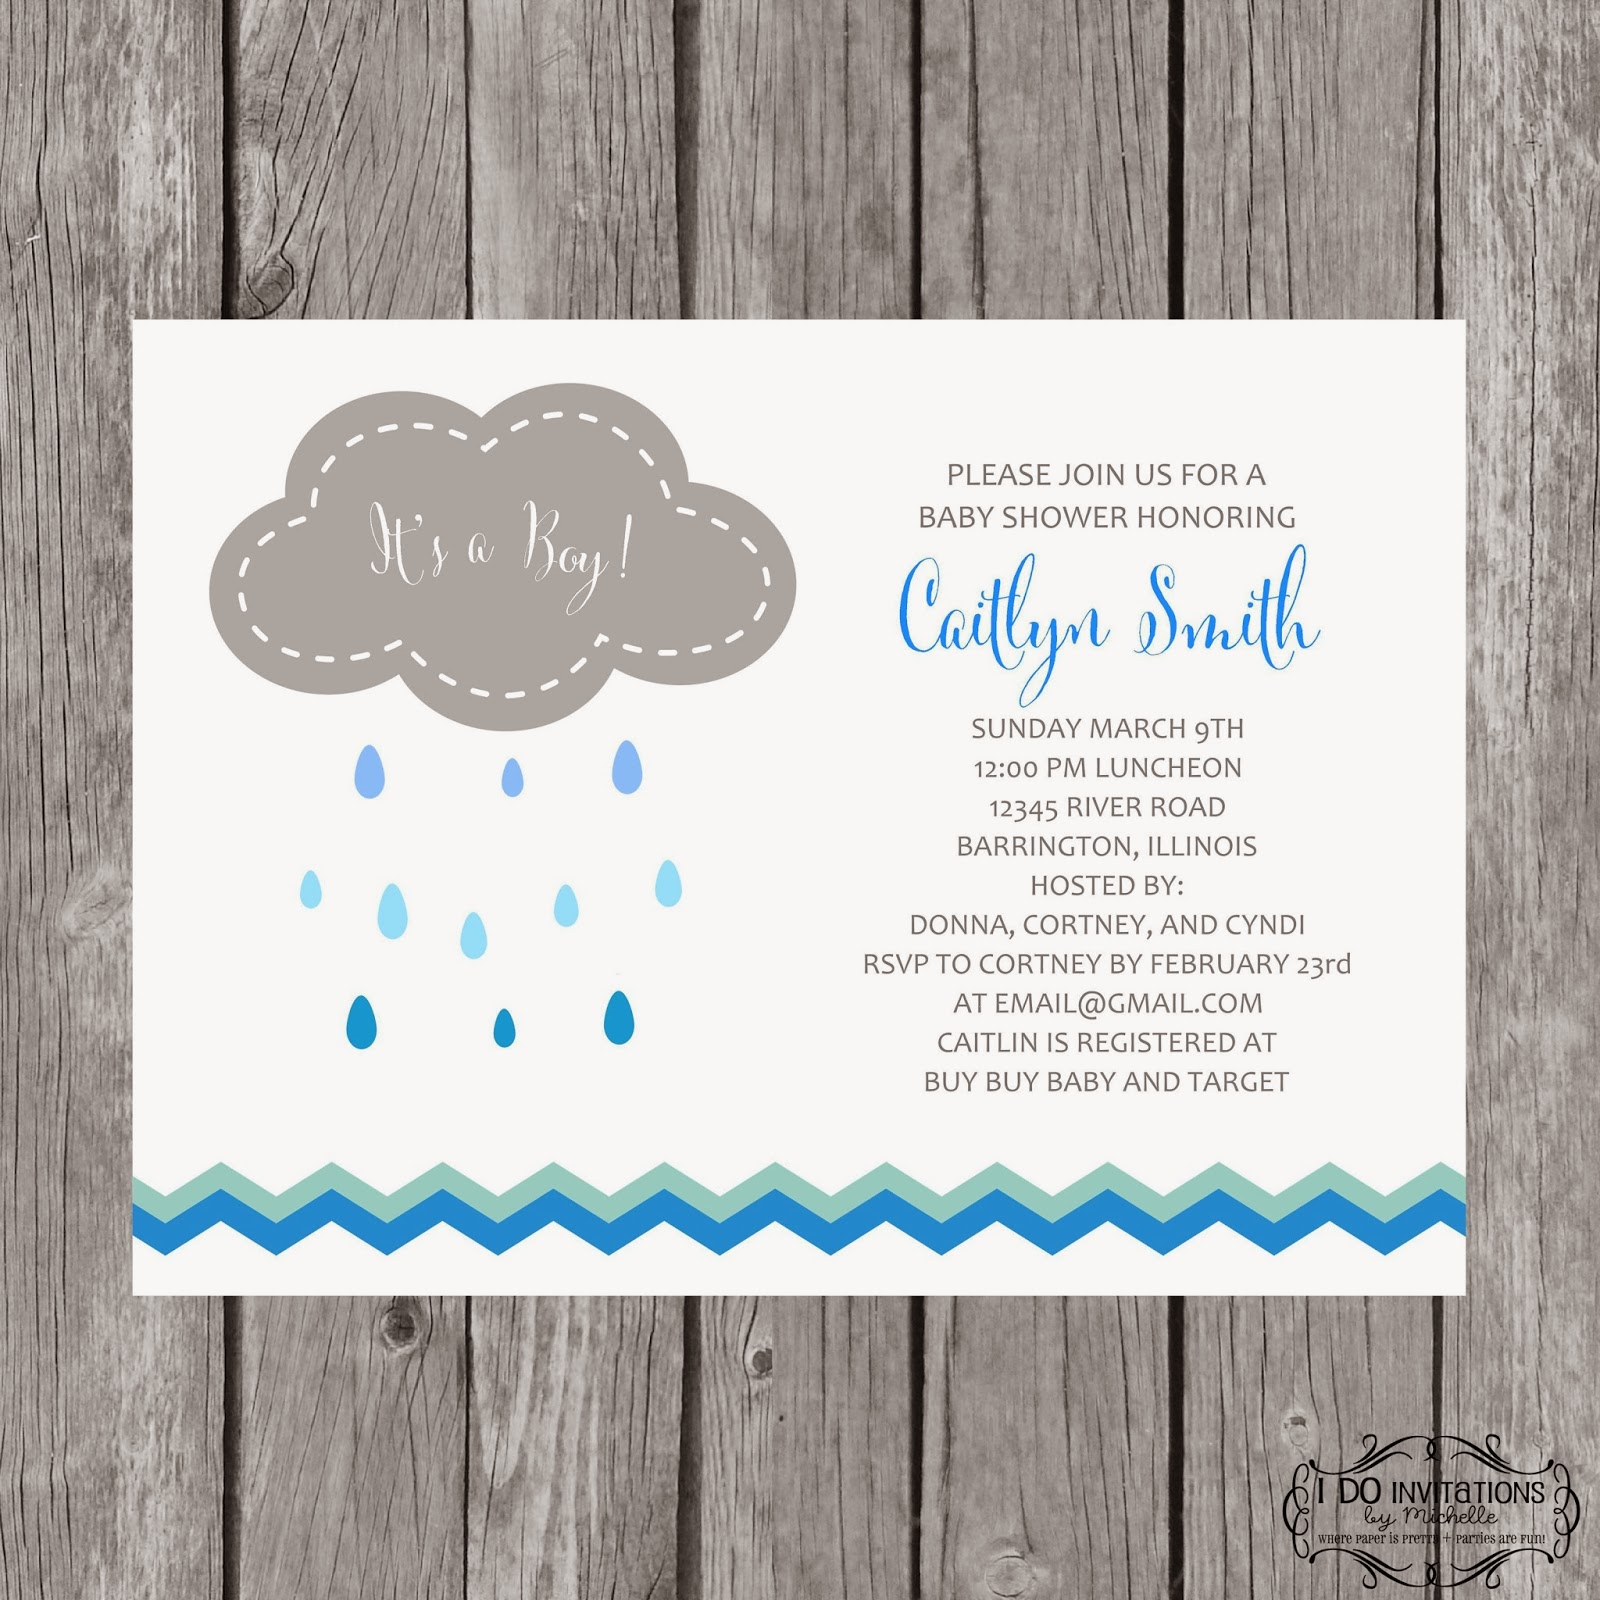 https://www.etsy.com/listing/176803765/rain-cloud-baby-shower-invitation-blue?ref=shop_home_active_1